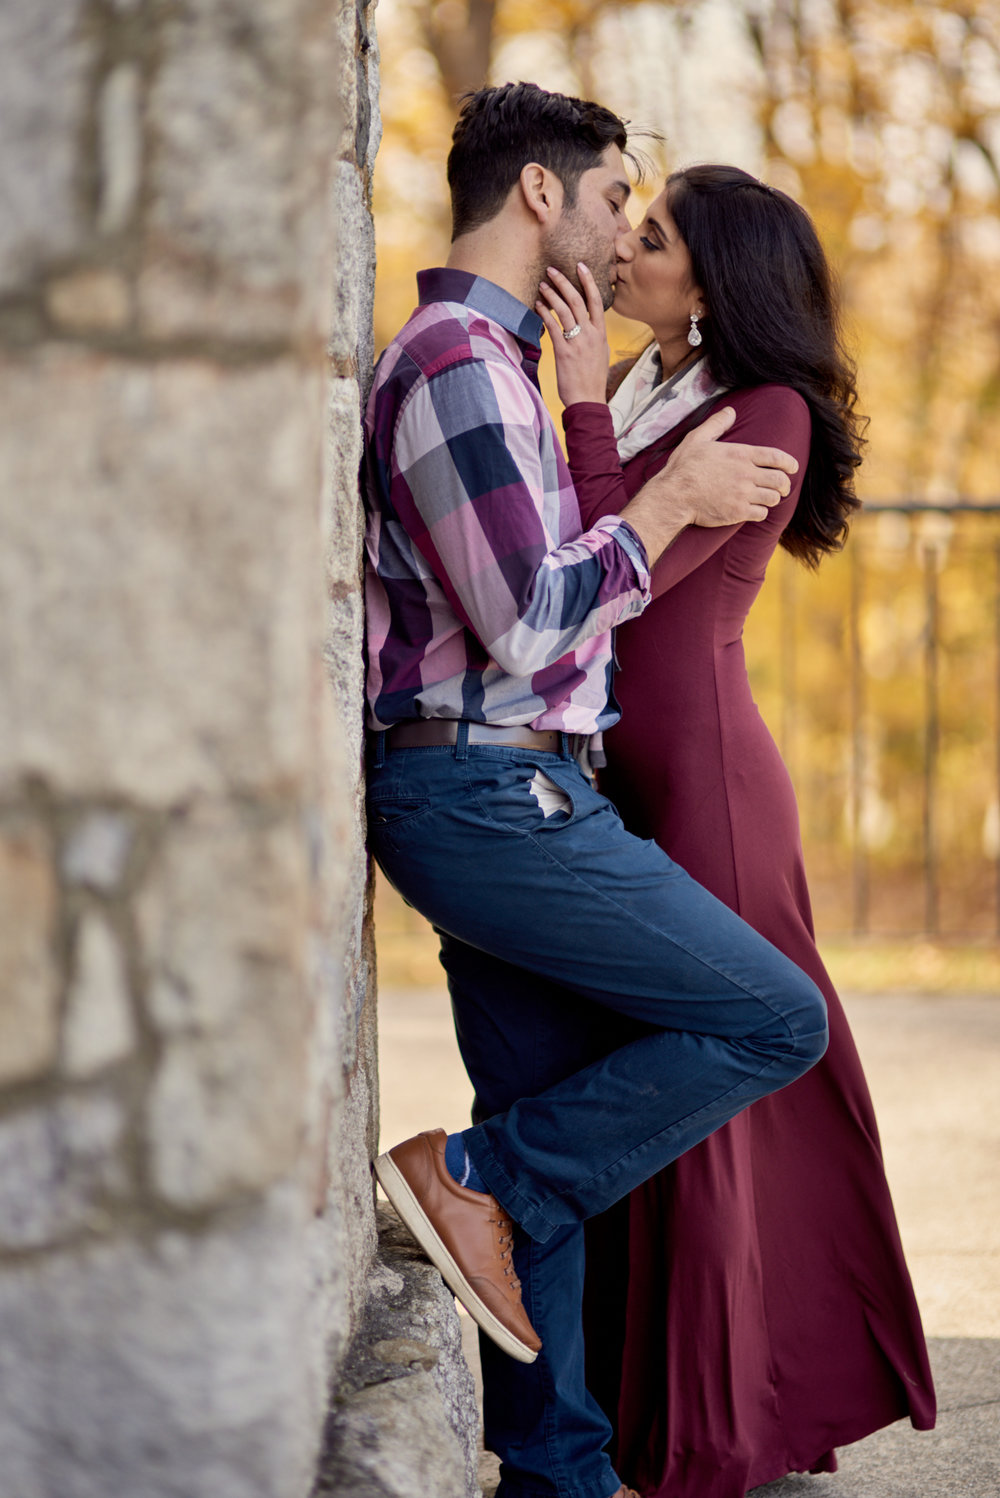 Kristin and Chris's Fall engagement session at Winnekenni Castle in Haverhill, Massachusetts.